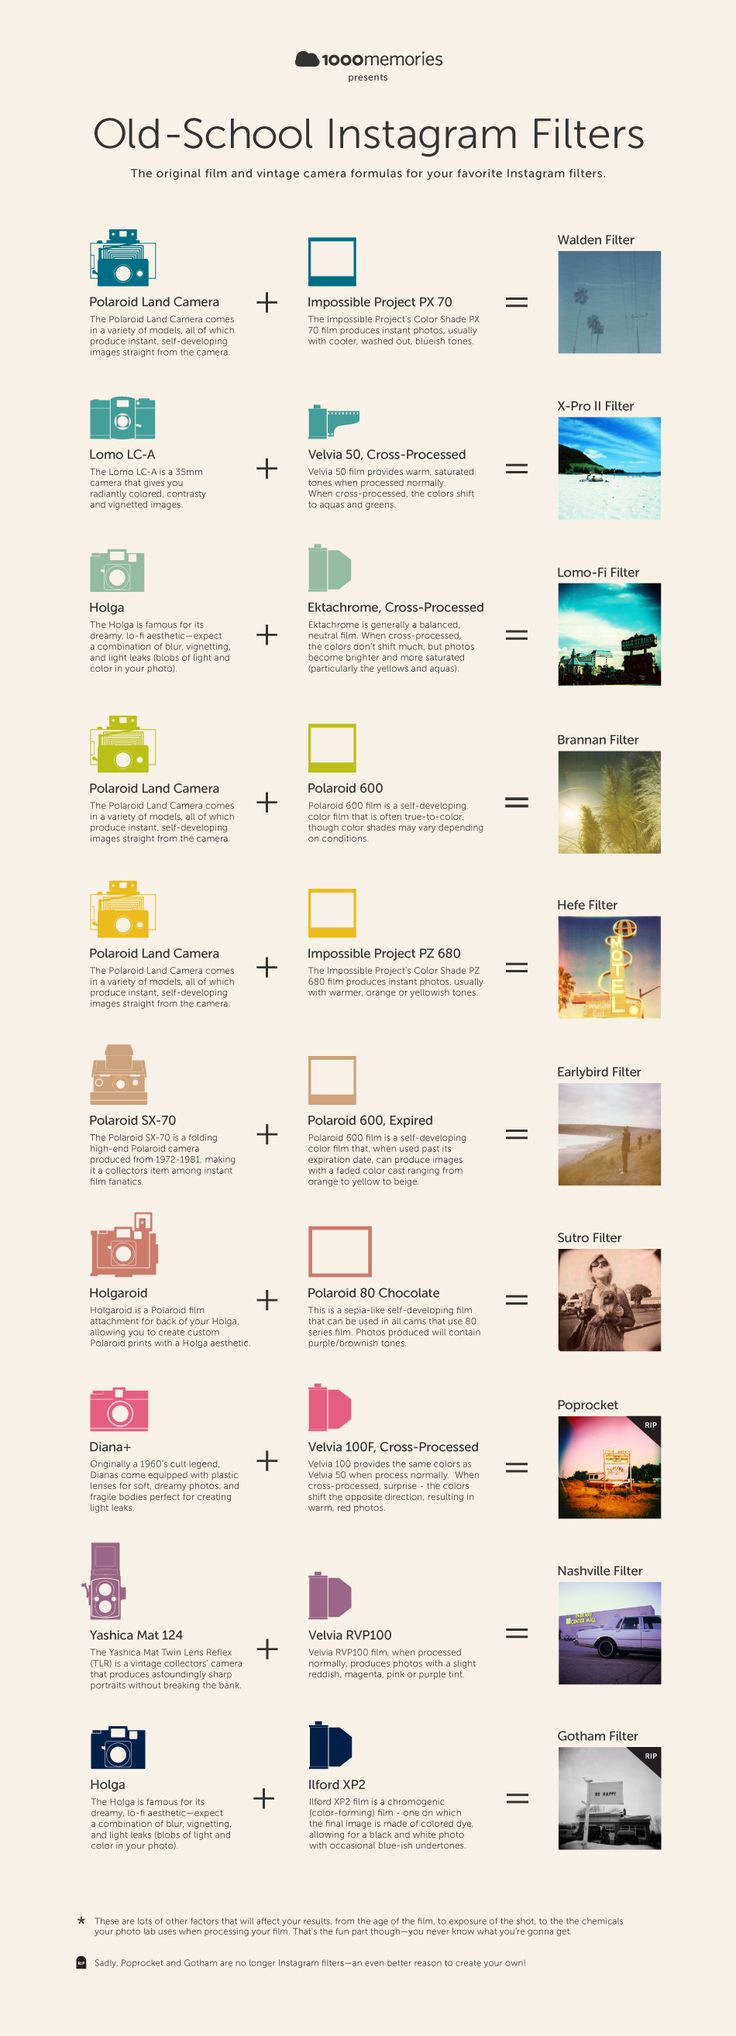 Old-School Instagram Filters #infographic